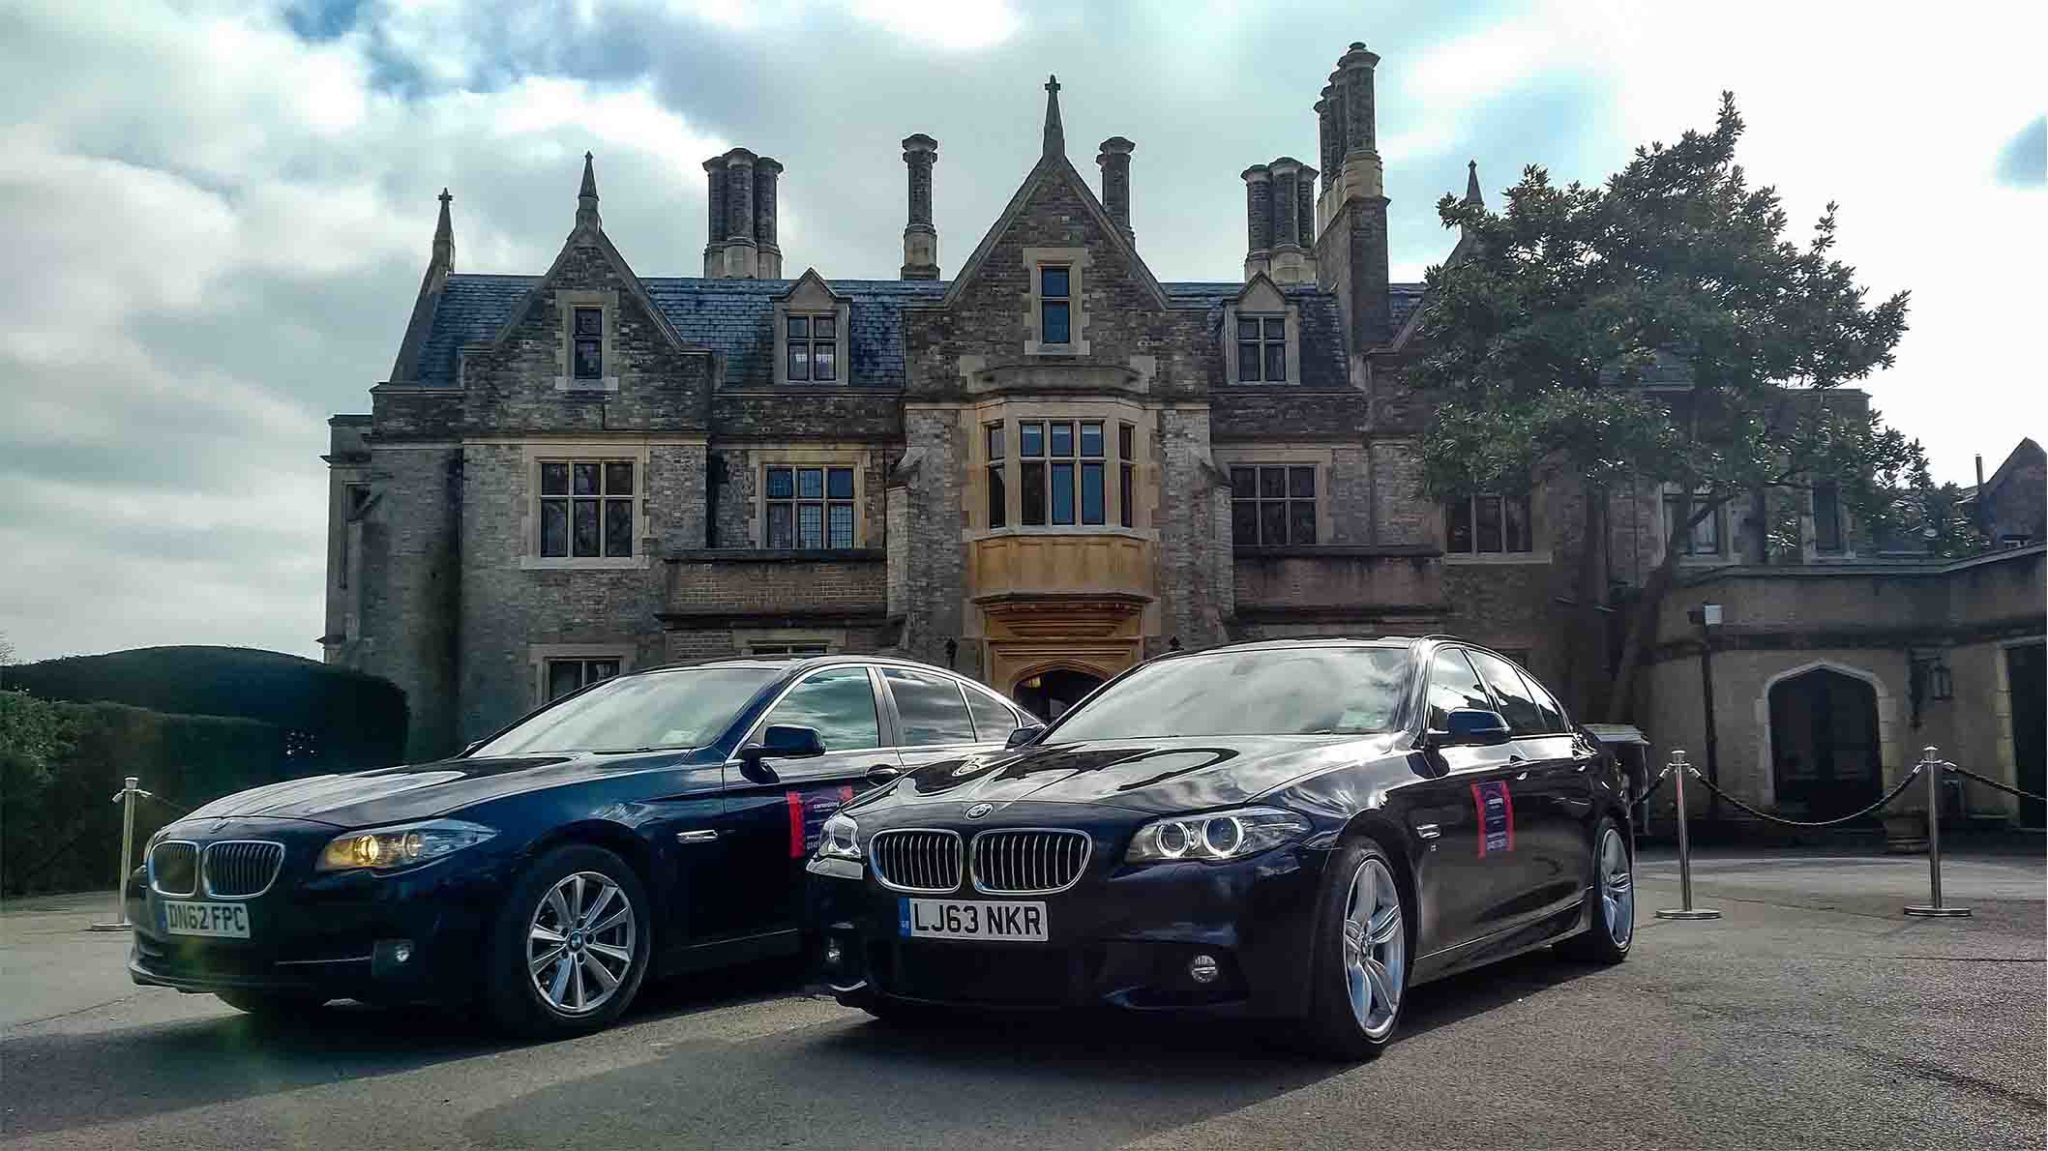 Pro Cars Woking - Taxi Service & Airport Transfers